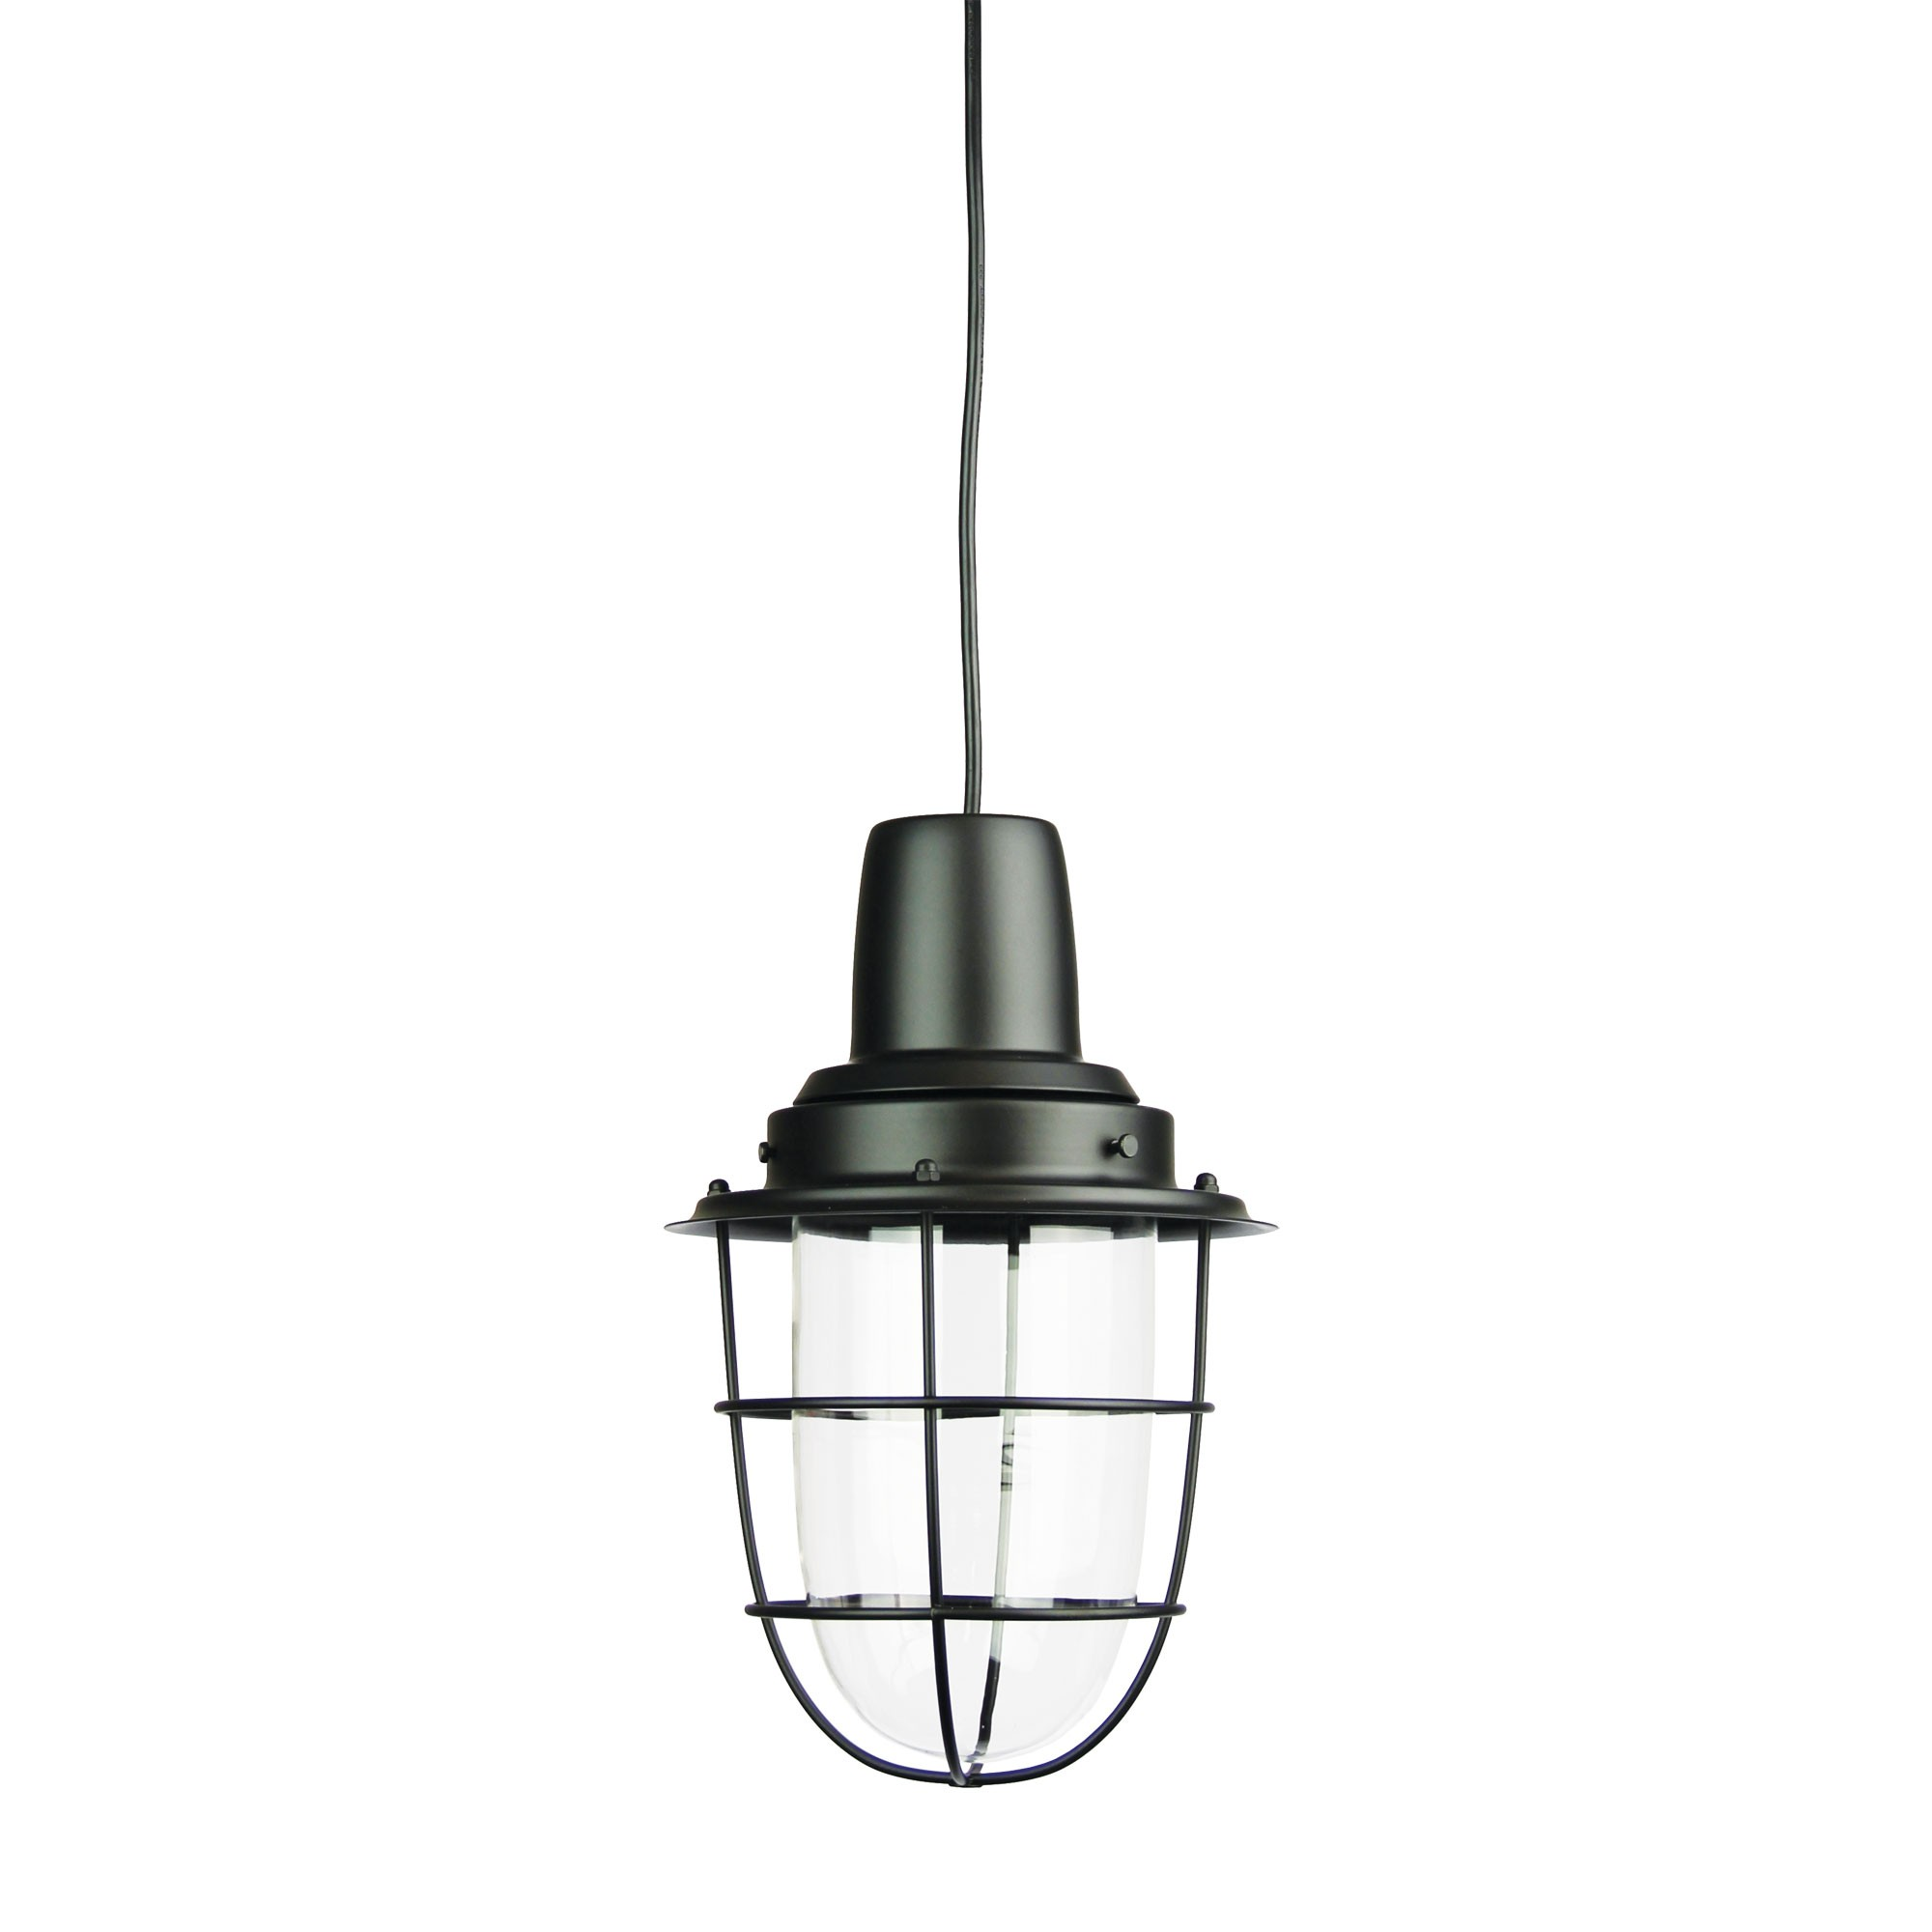 Flint Glass & Metal Pendant Light, Black